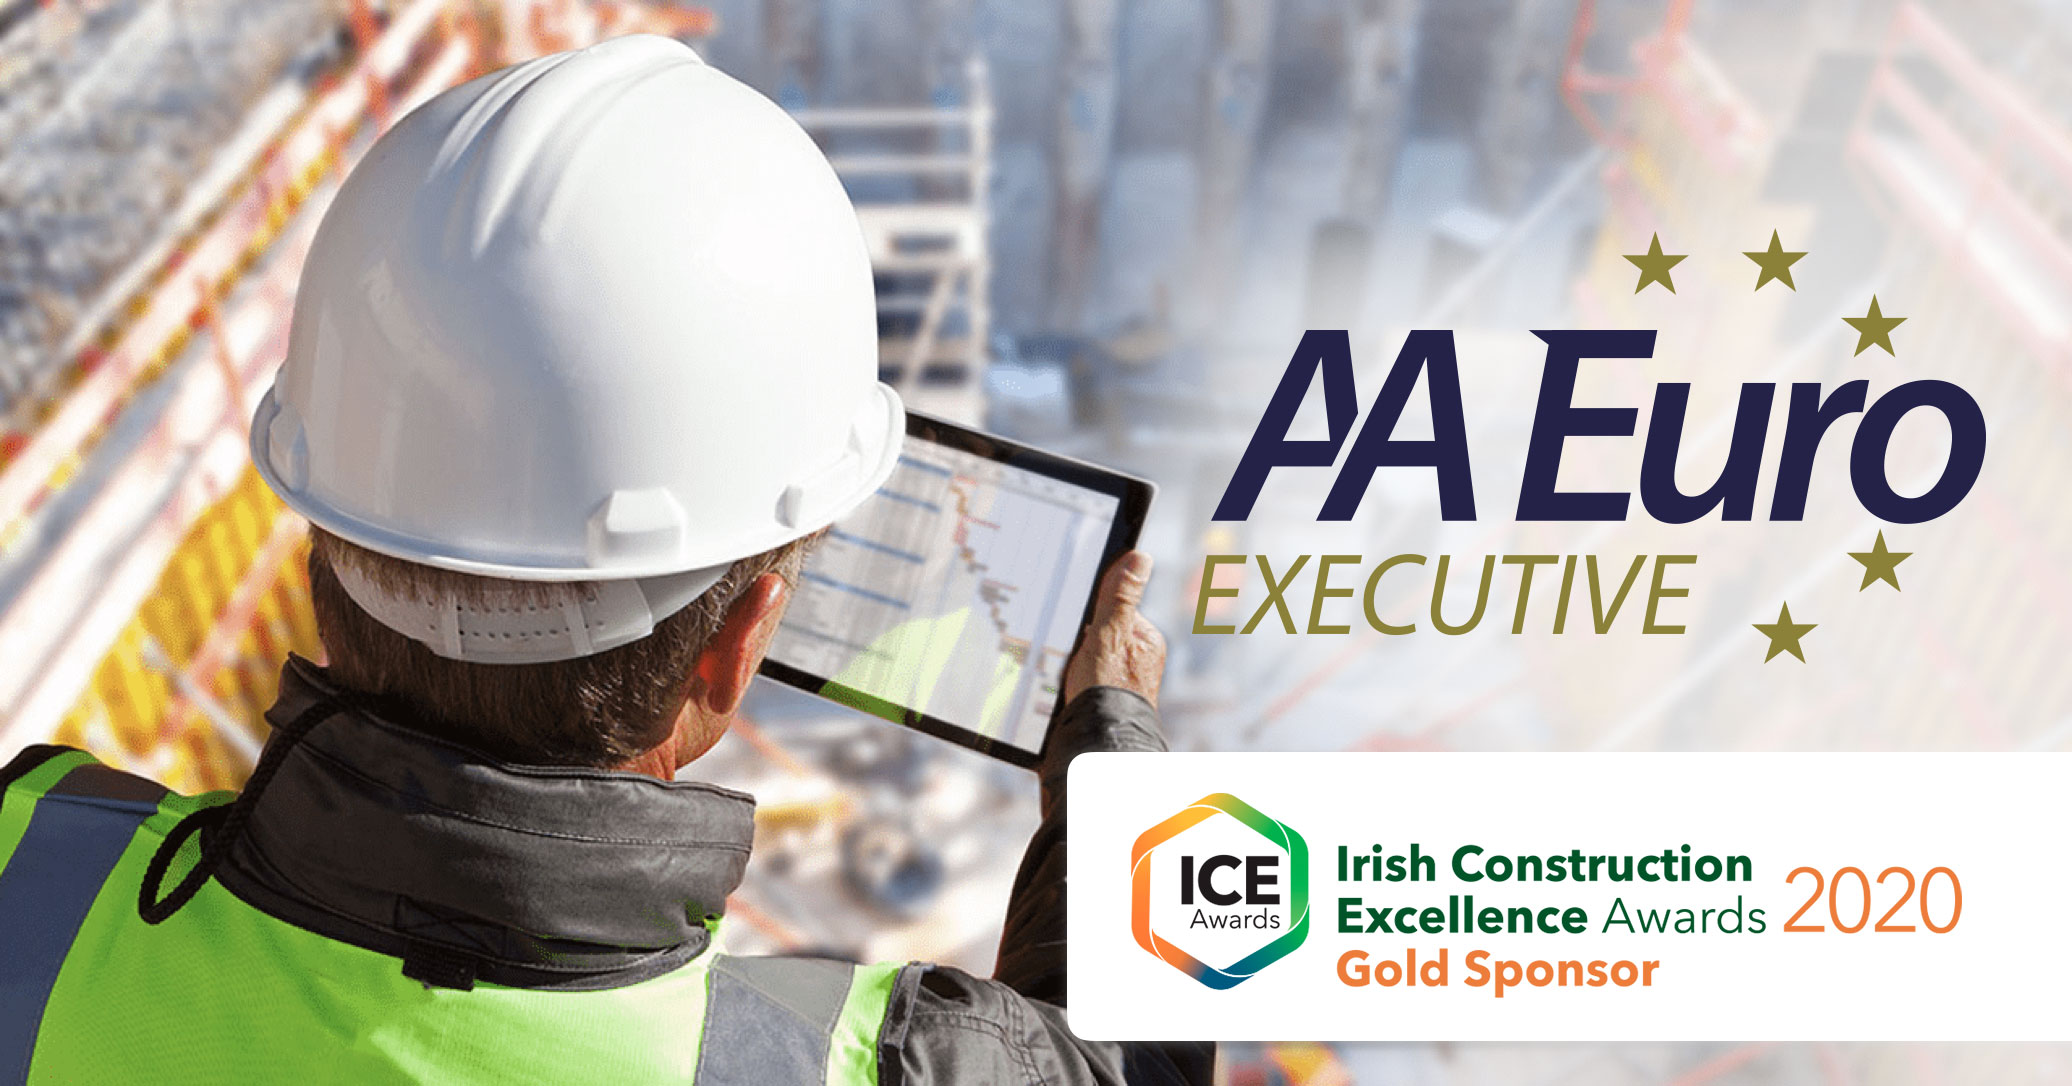 Irish Construction Excellence Awards, AA Euro Executive Recruitment Retained as Gold Sponsor of the 2020 ICE Awards, AA Euro Group Ltd., AA Euro Group Ltd.